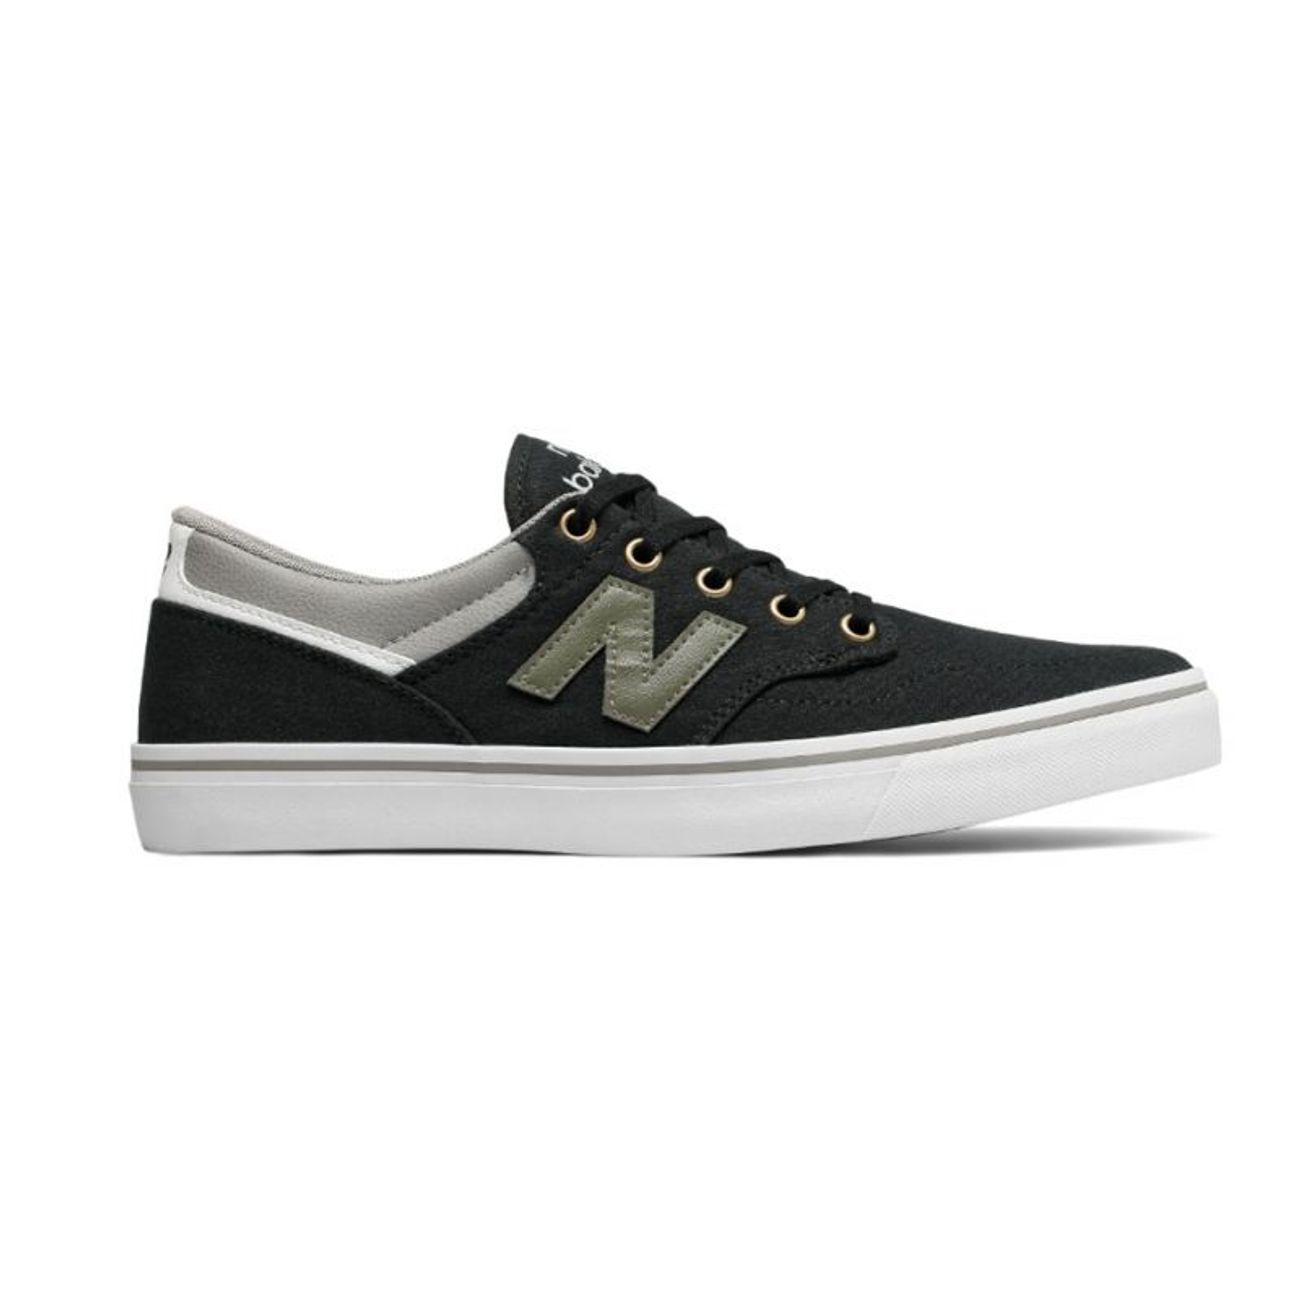 Style All Am331blo Skate New Noir Am331 Balance Coasts Padel Adulte eWdCxrBo